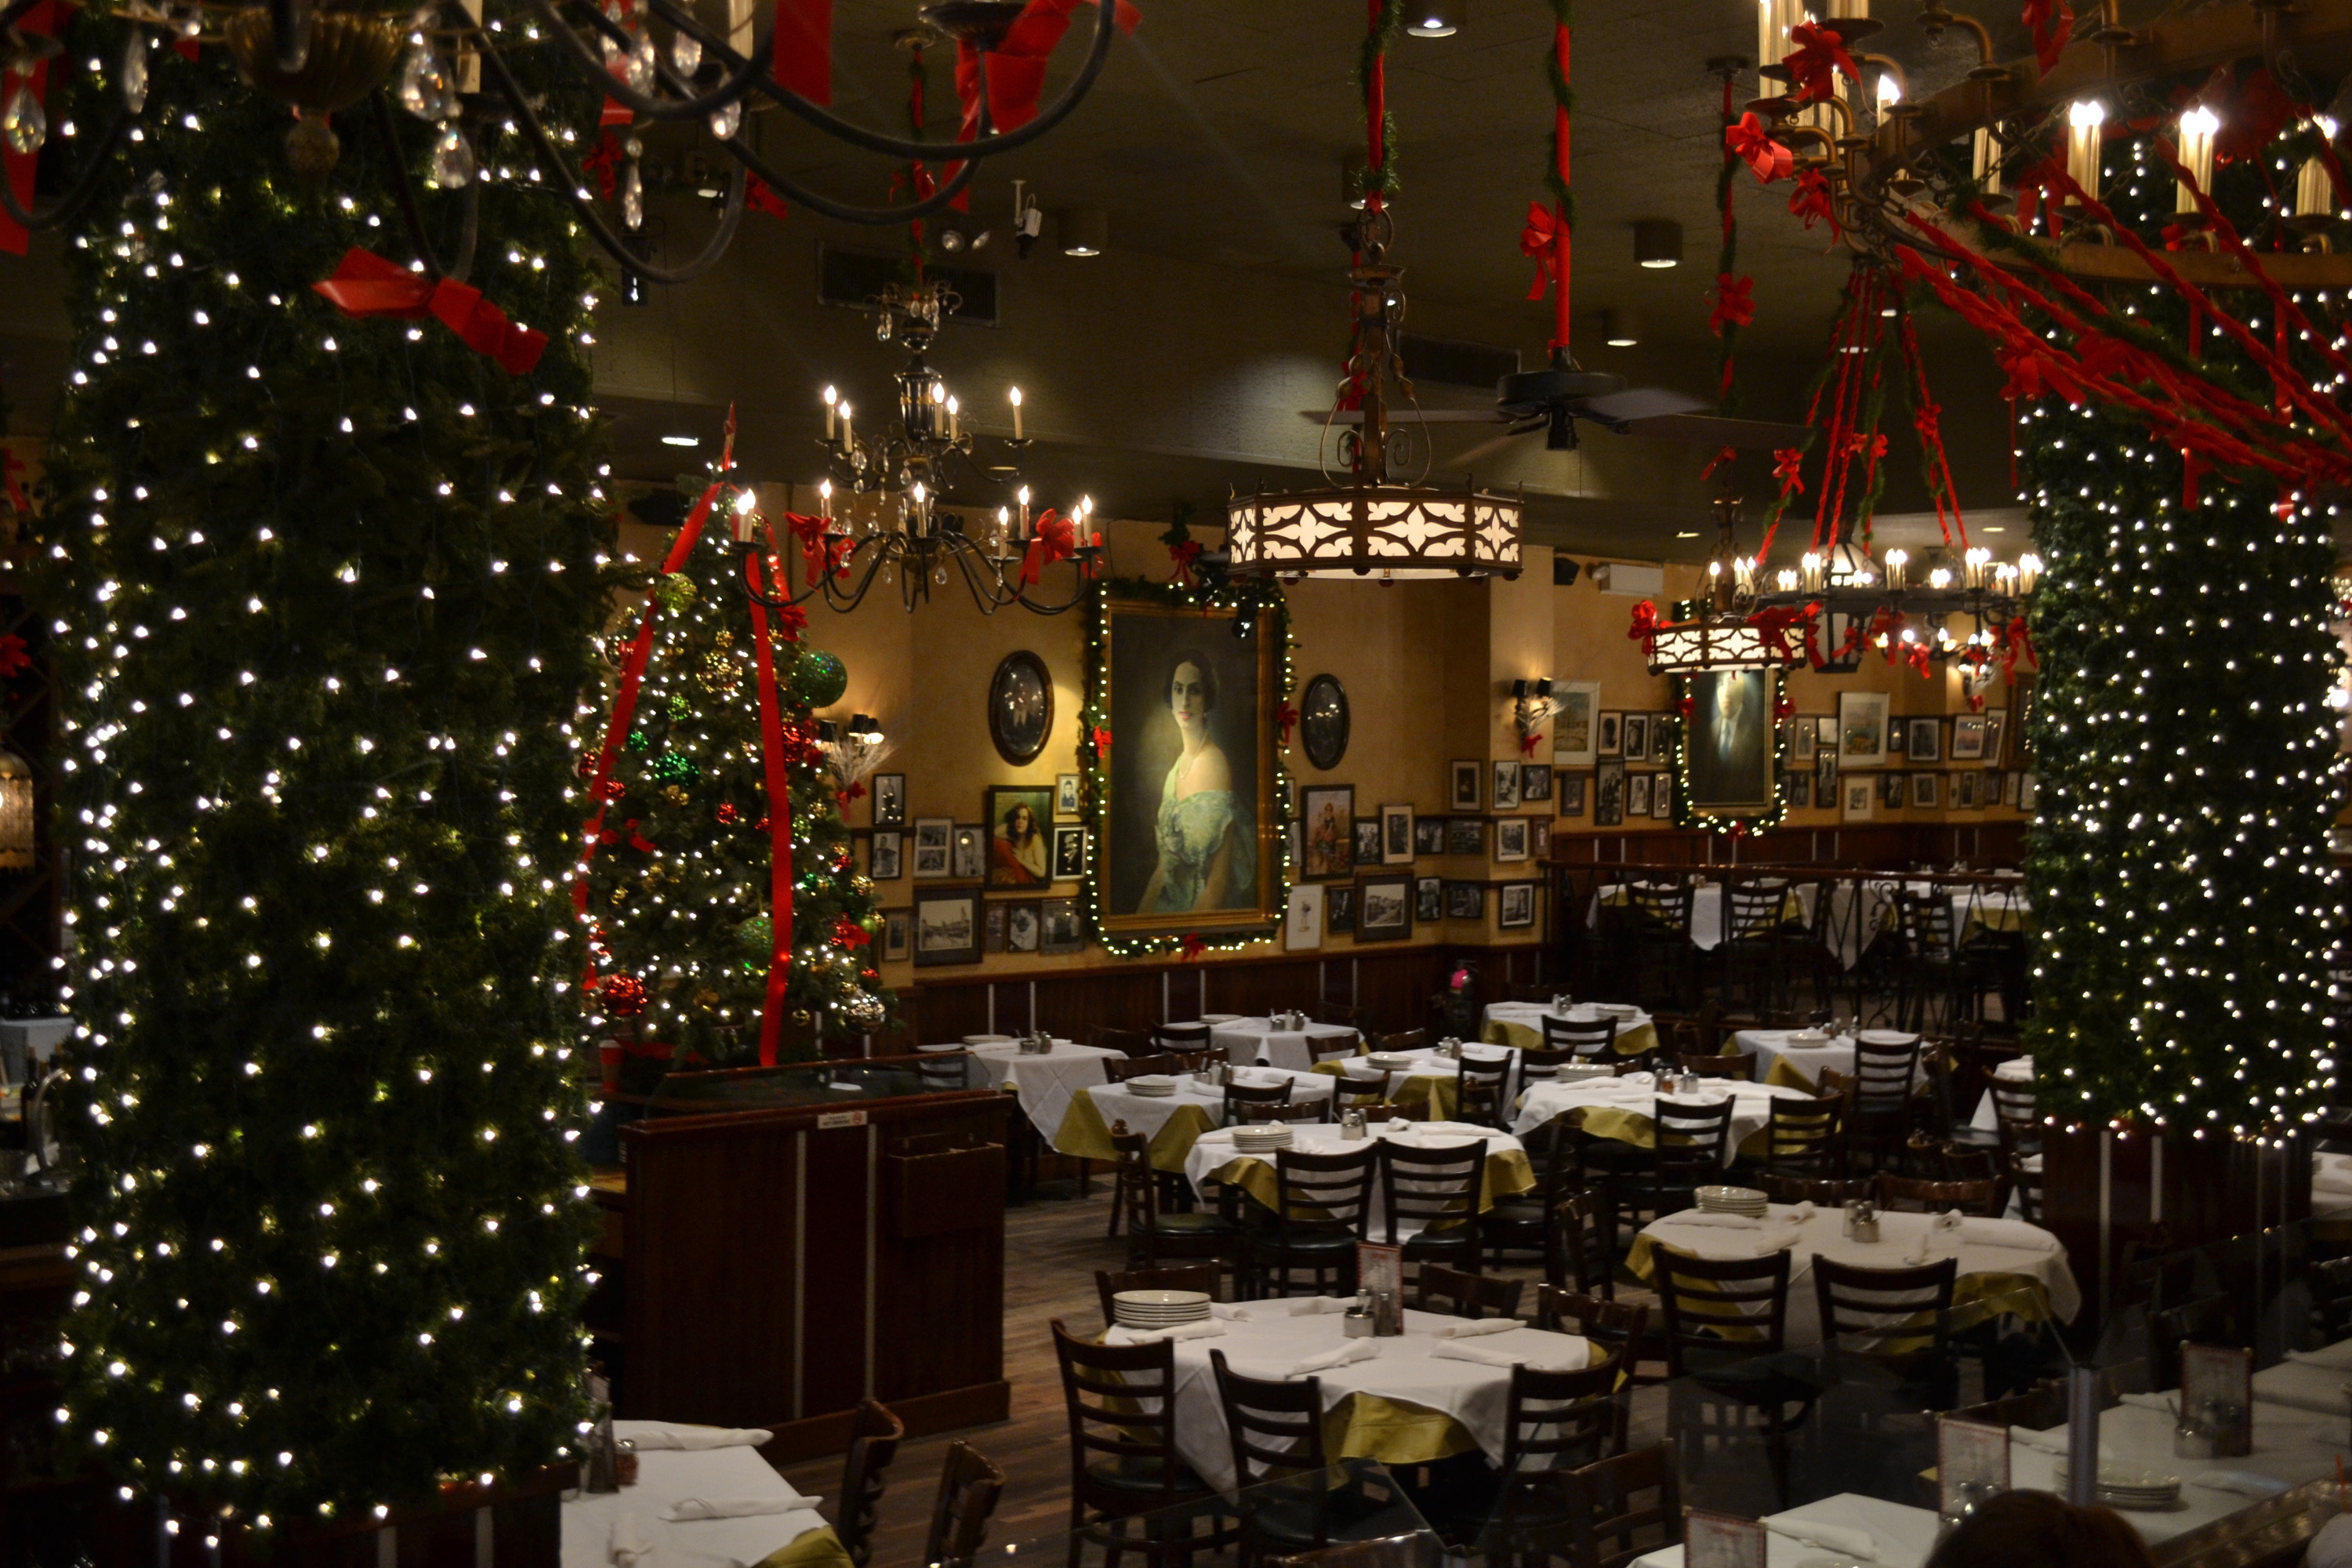 Christmas Eve Dinner Nyc  14 Spots to Eat Christmas Dinner in NYC This Holiday Season